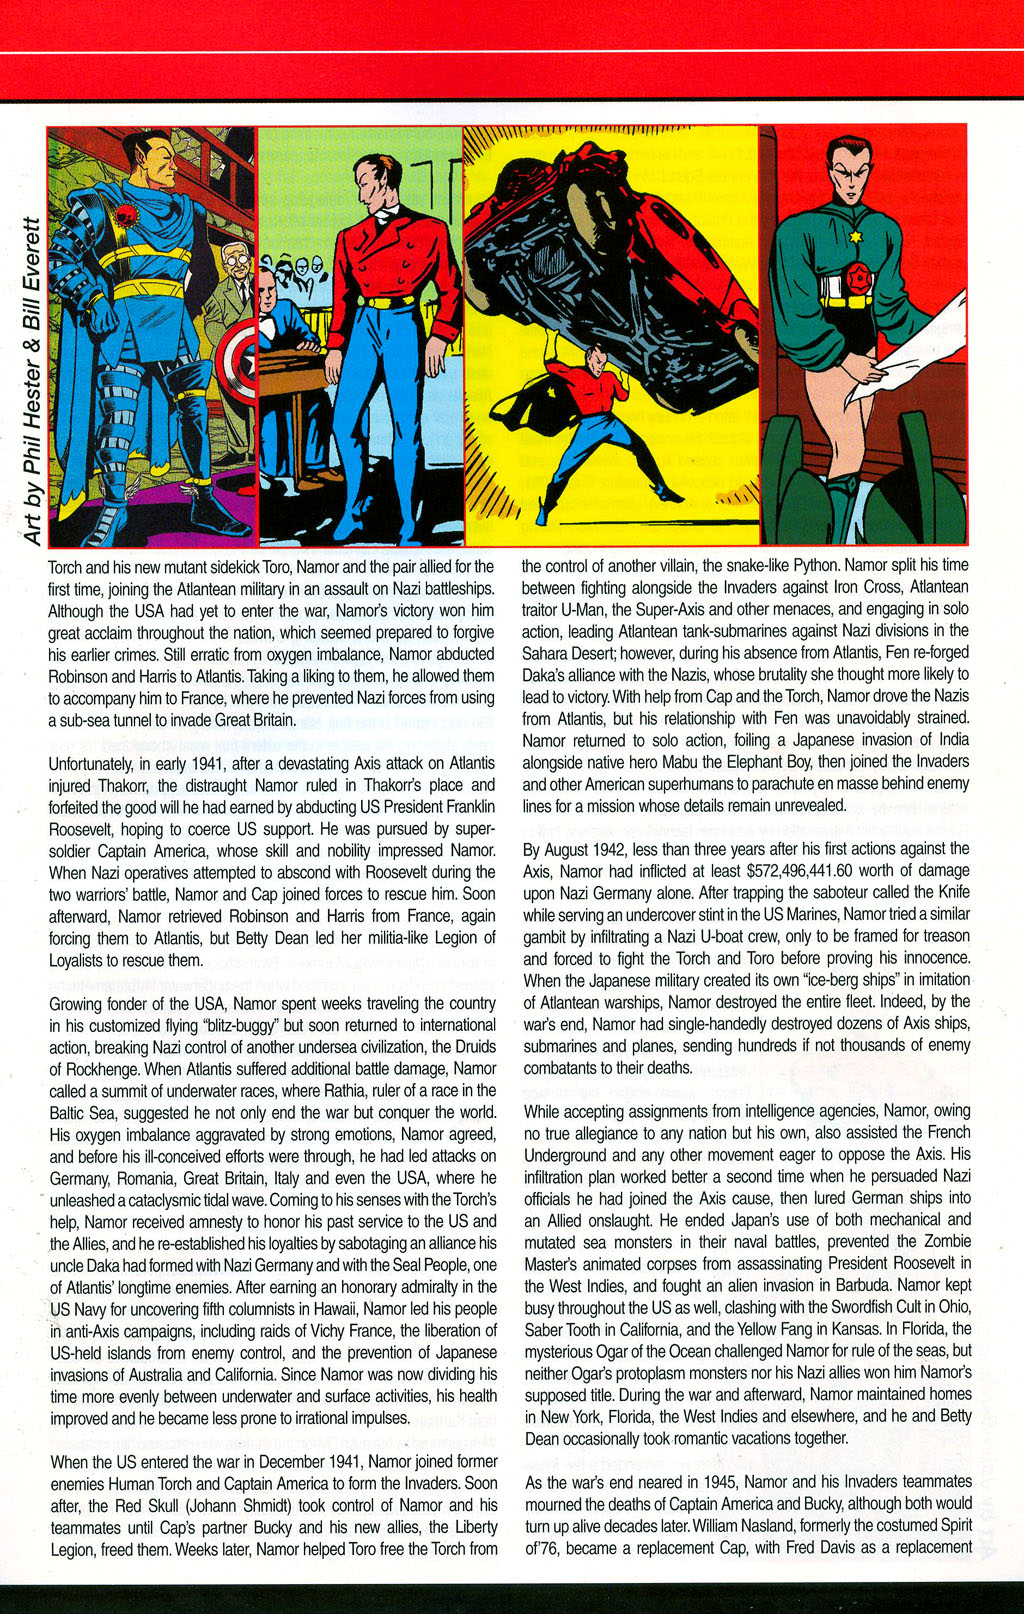 Read online All-New Official Handbook of the Marvel Universe A to Z: Update comic -  Issue #3 - 45